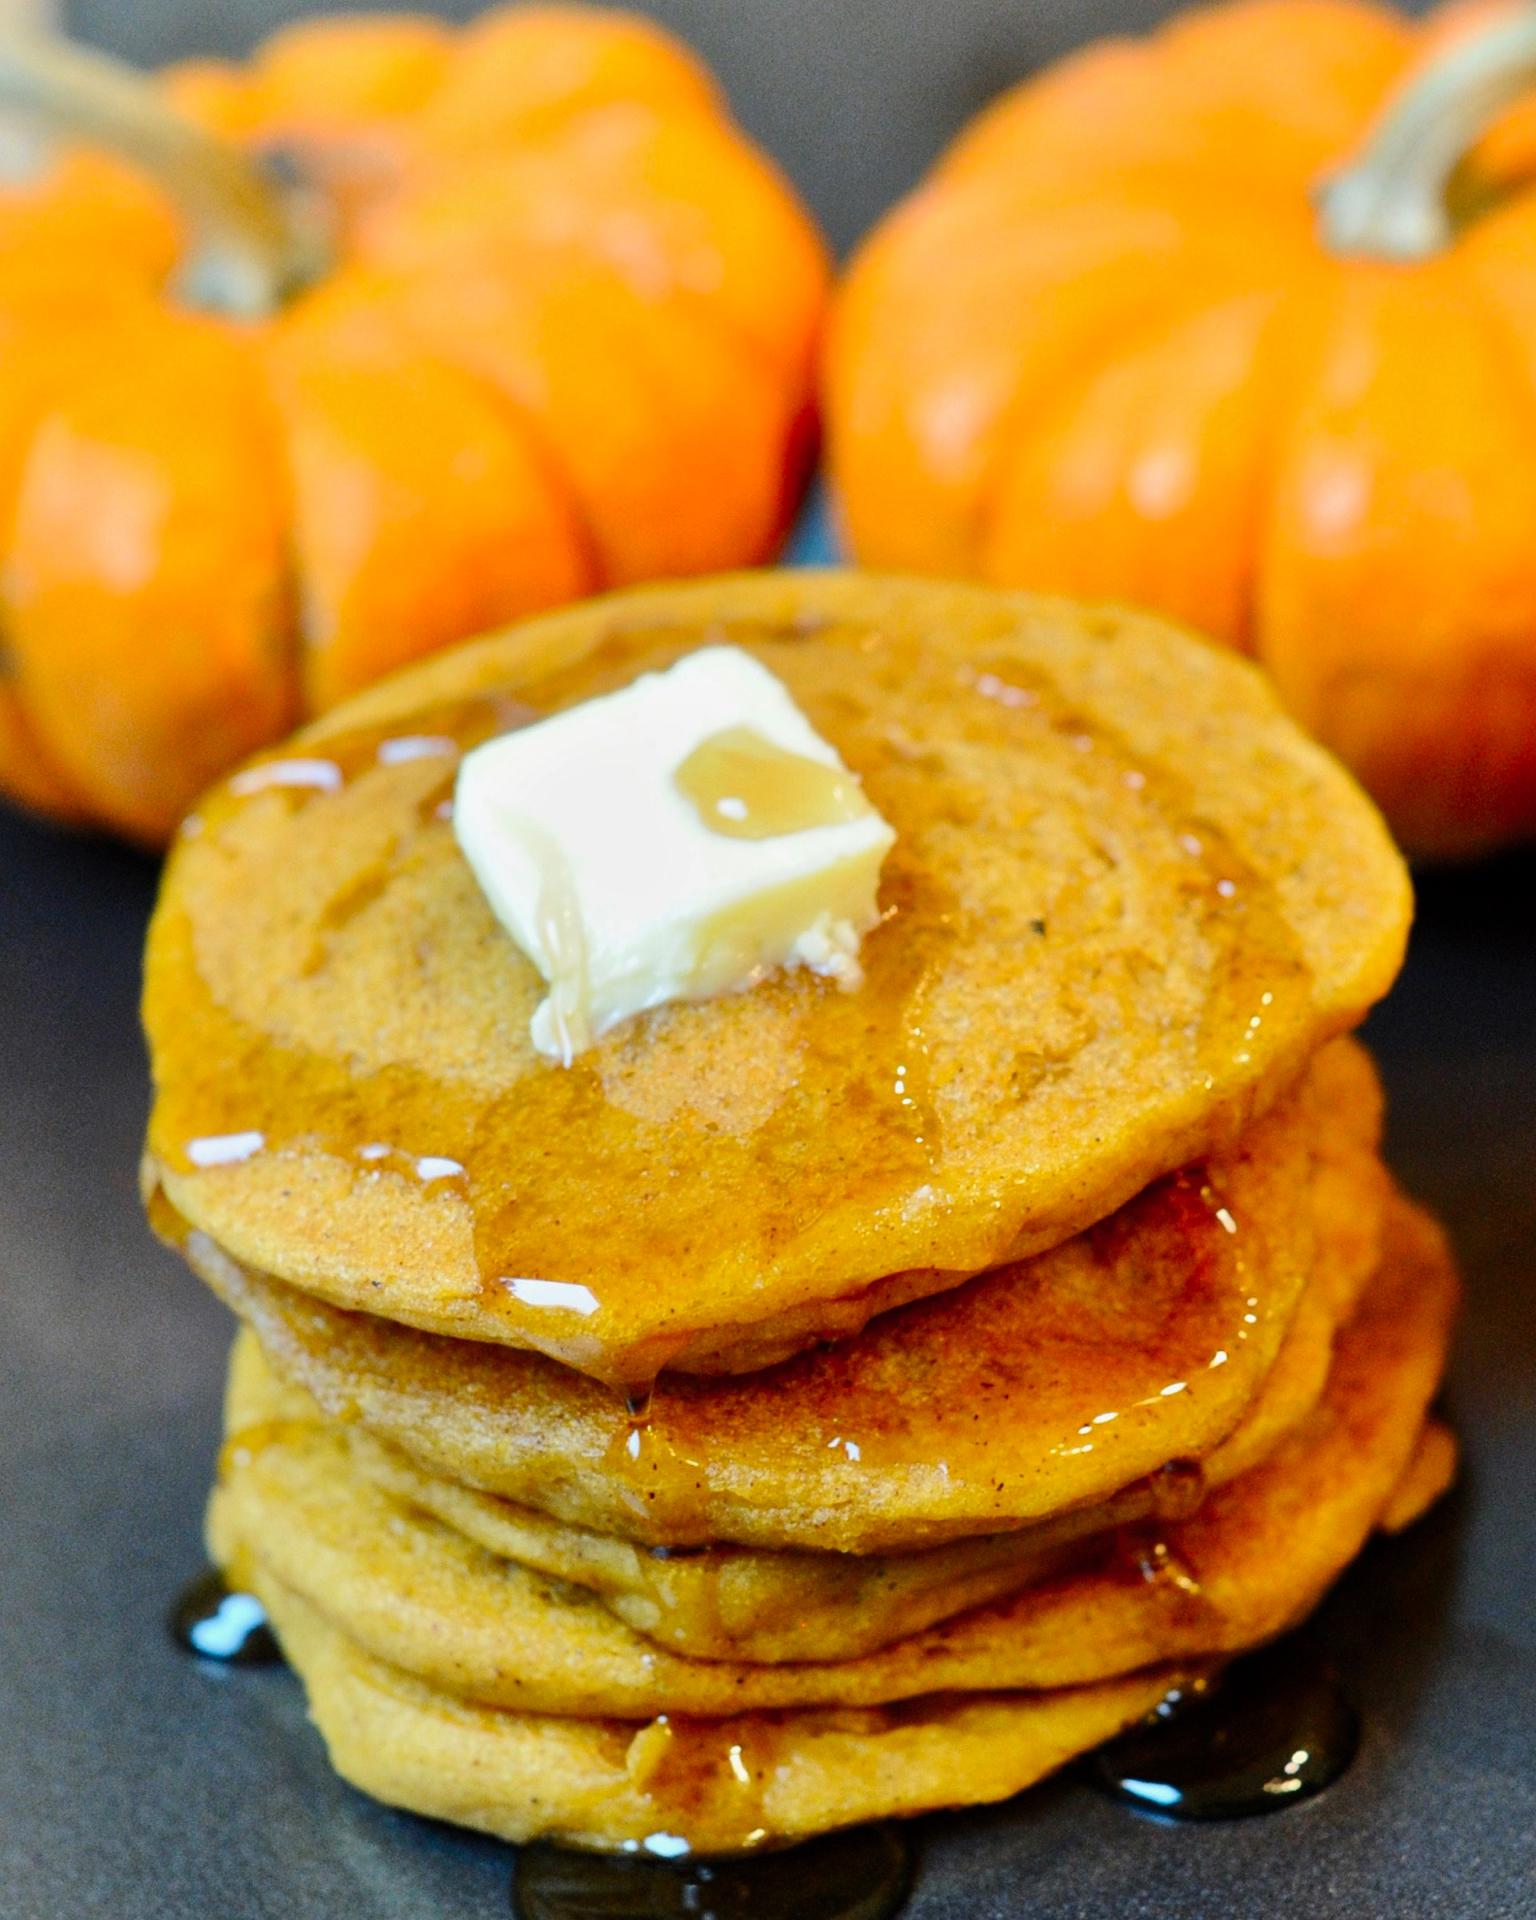 Maple syrup on a stack of pumpkin spice pancakes